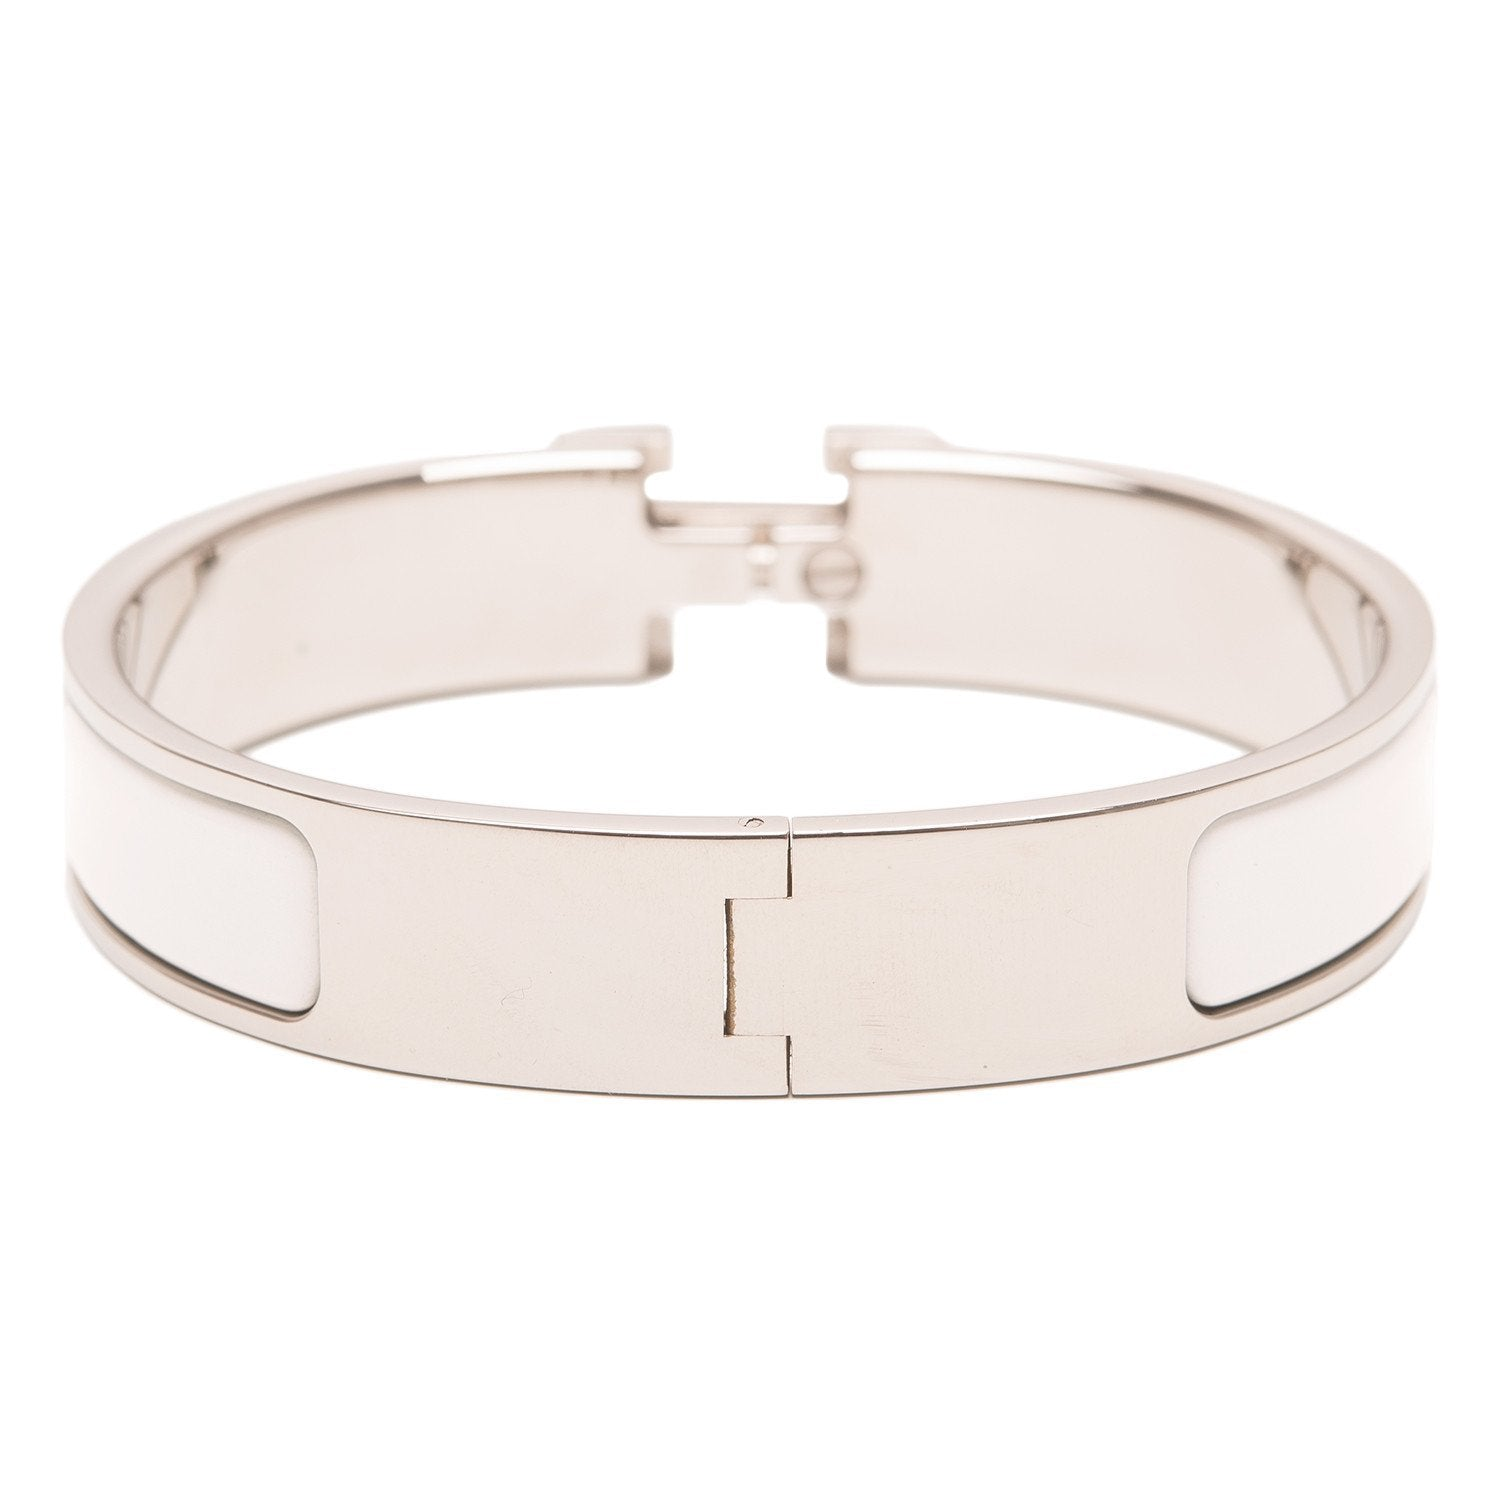 Hermes White Enamel H Clic Clac Narrow Bracelet Pm Accessories